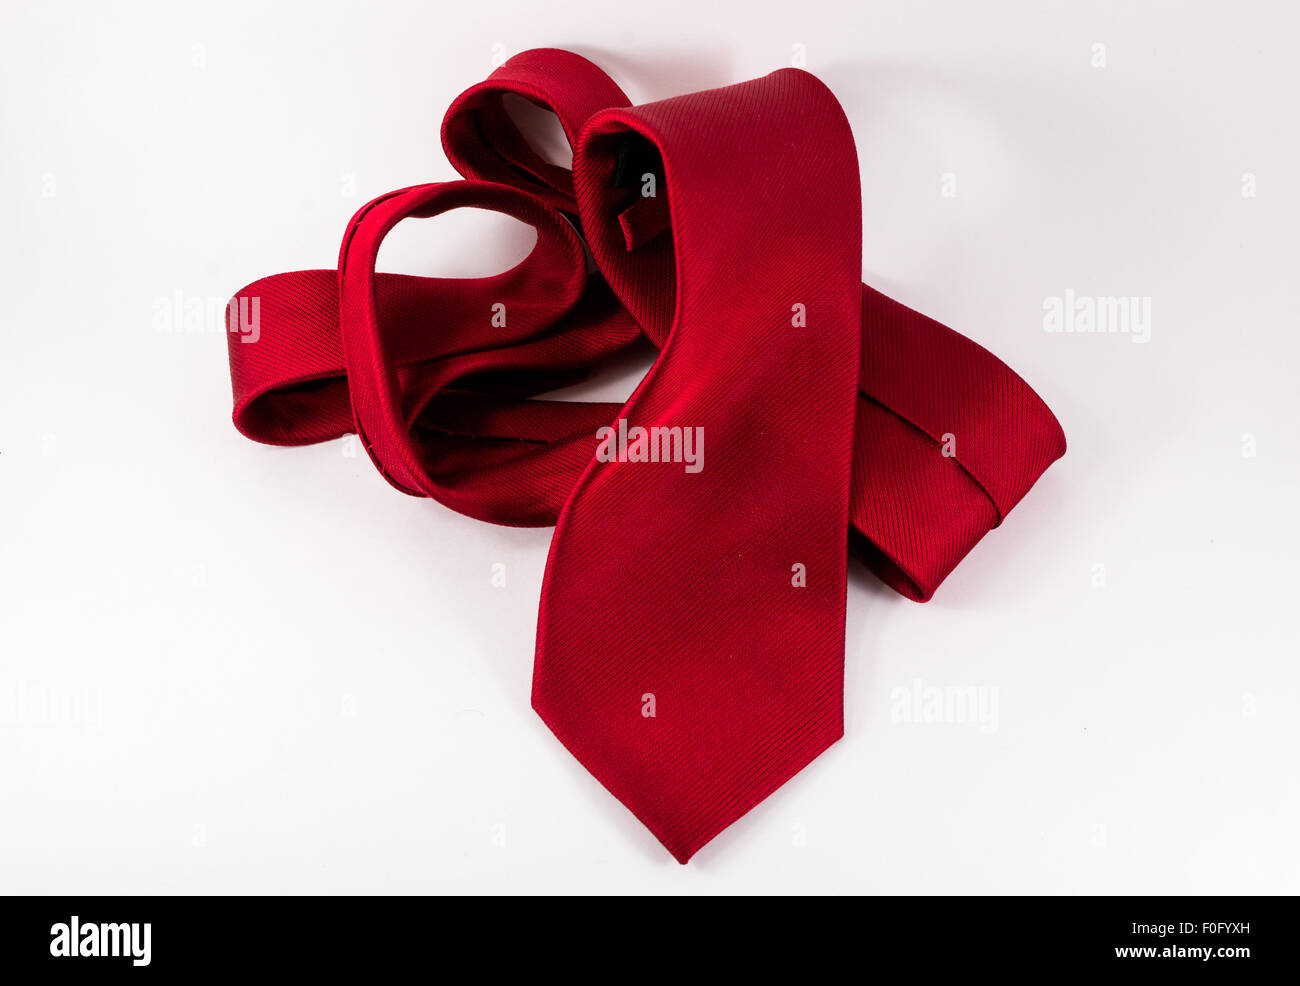 Single crumpled red silk tie belonging to a modern business man on a white horizontal background - Stock Image